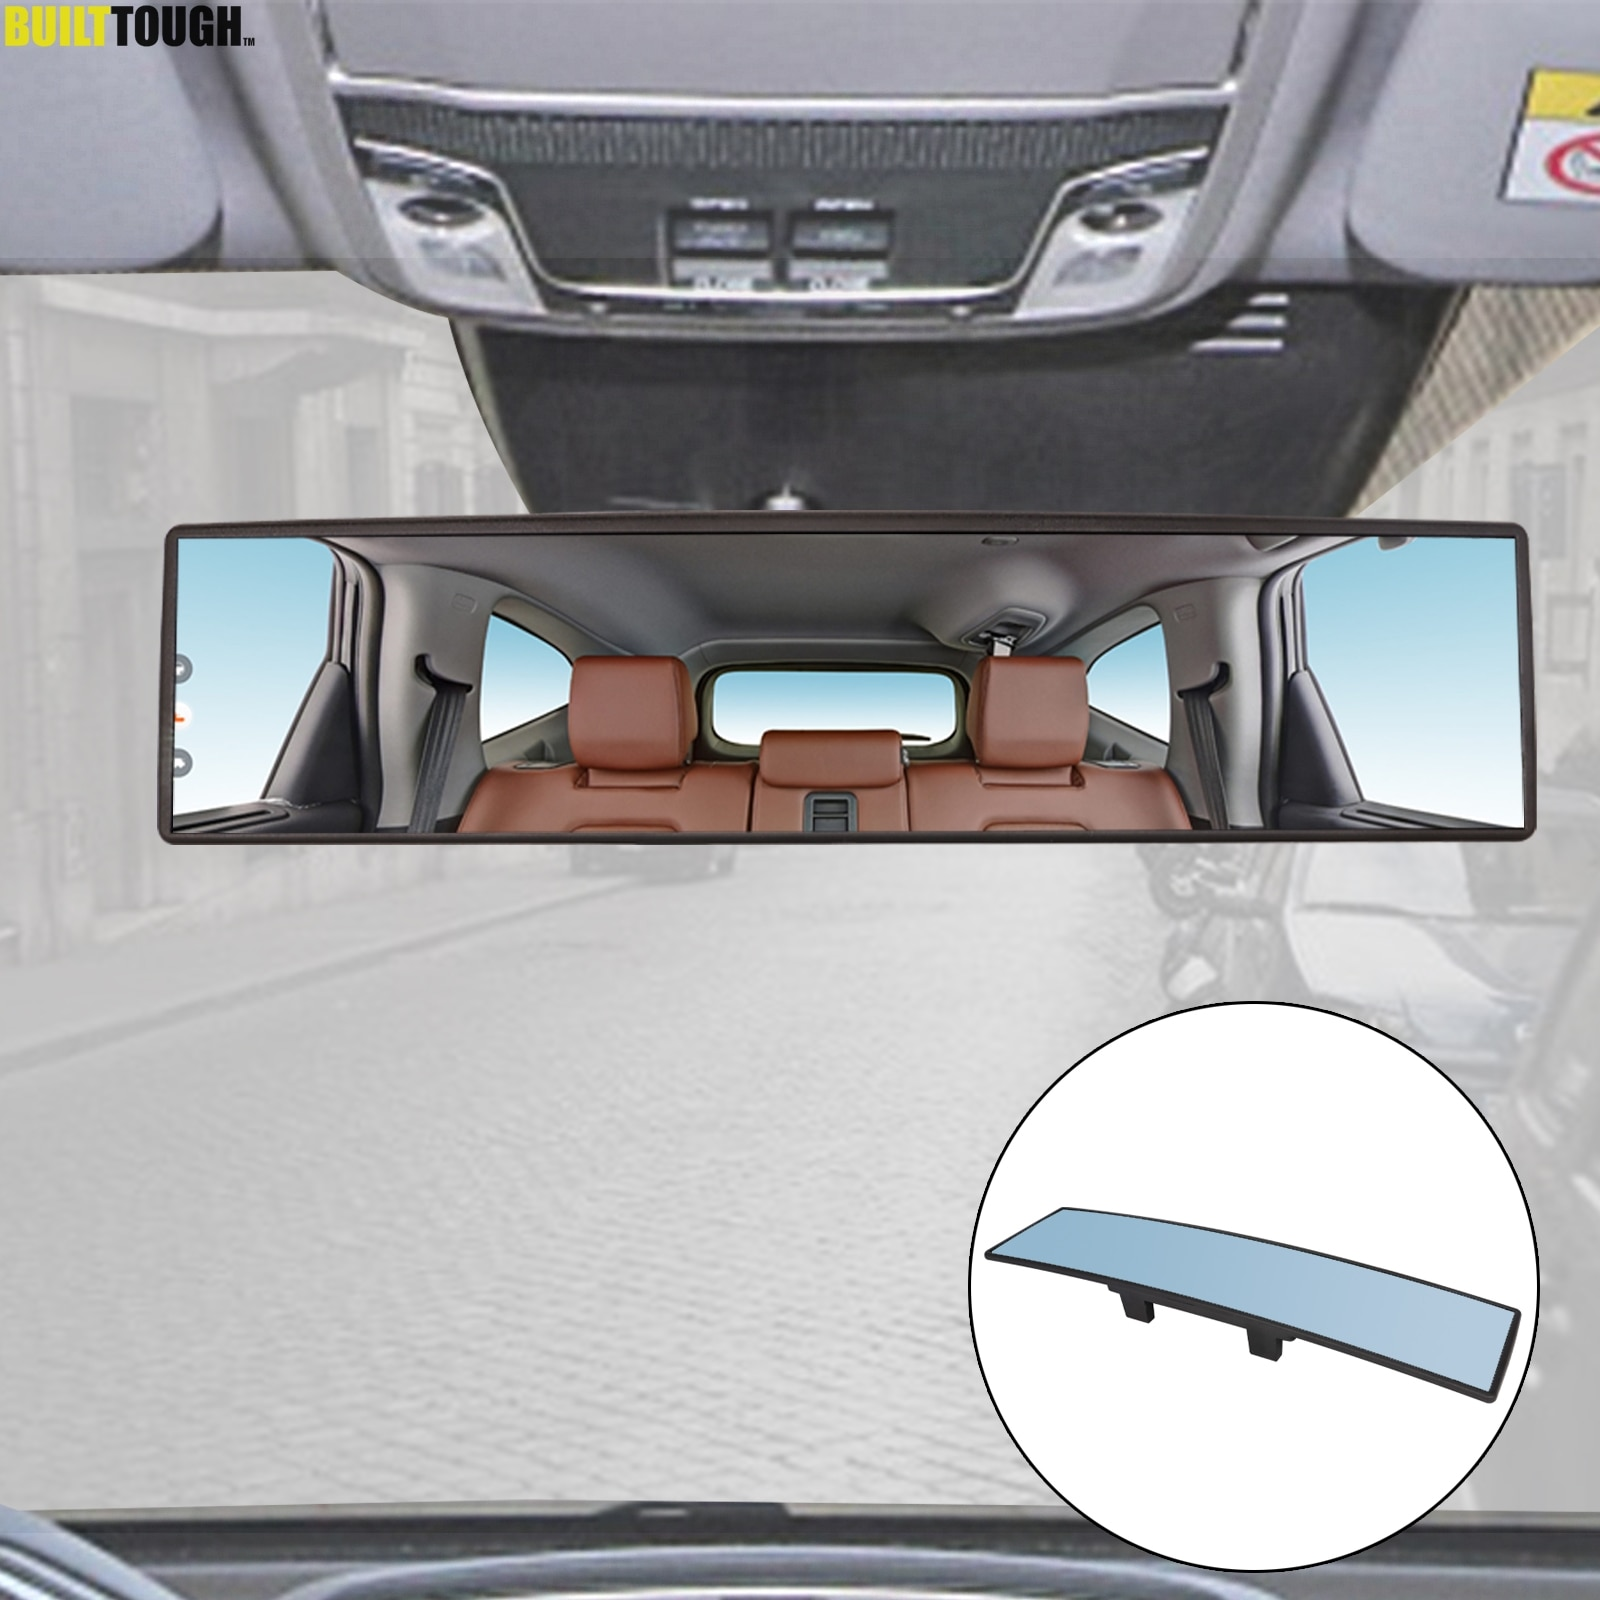 Universal Car Mirror Interior Rearview Mirrors Auto Rear View Mirror Anti-glare Wide-angle Surface Blue Mirror Auto Accessories